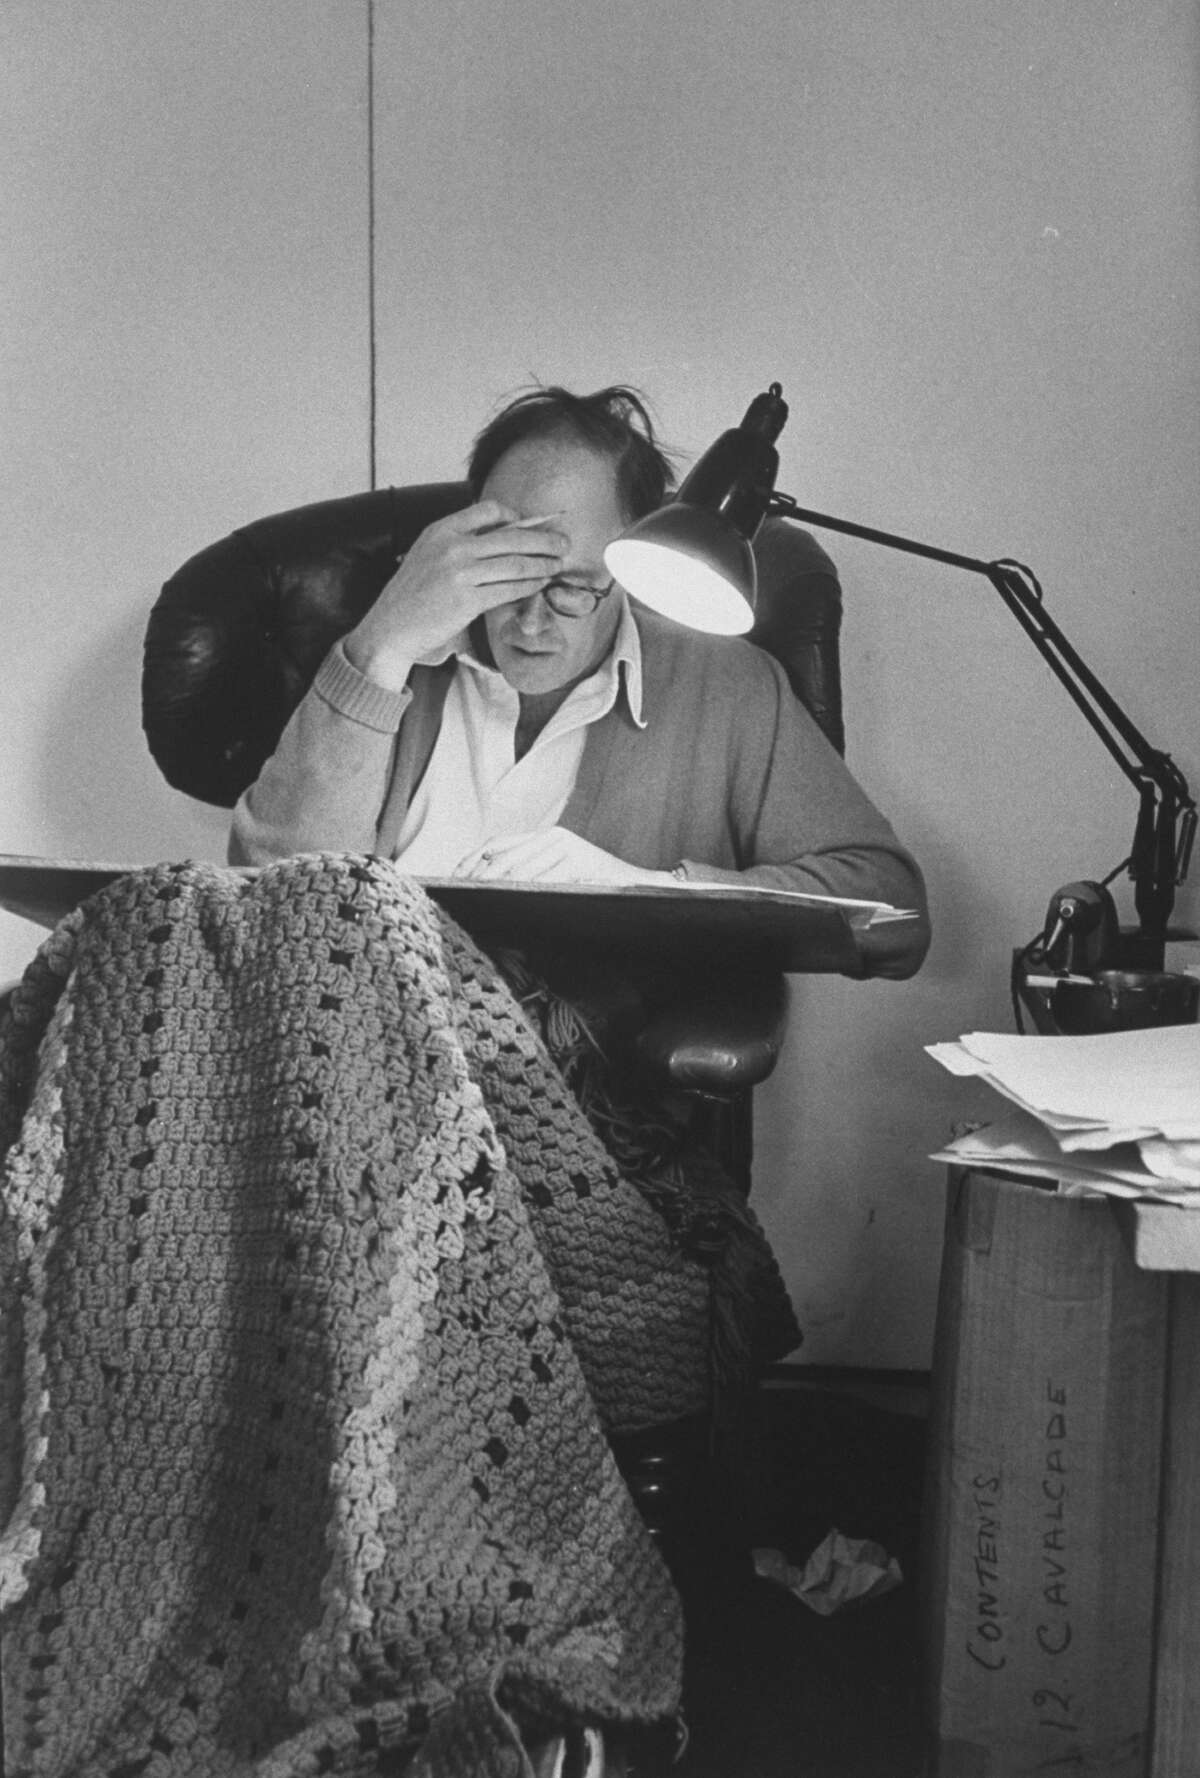 Author Roald Dahl at work in his usual writing chair. The chair had a hole in the back to relieve the pressure on his sore back.